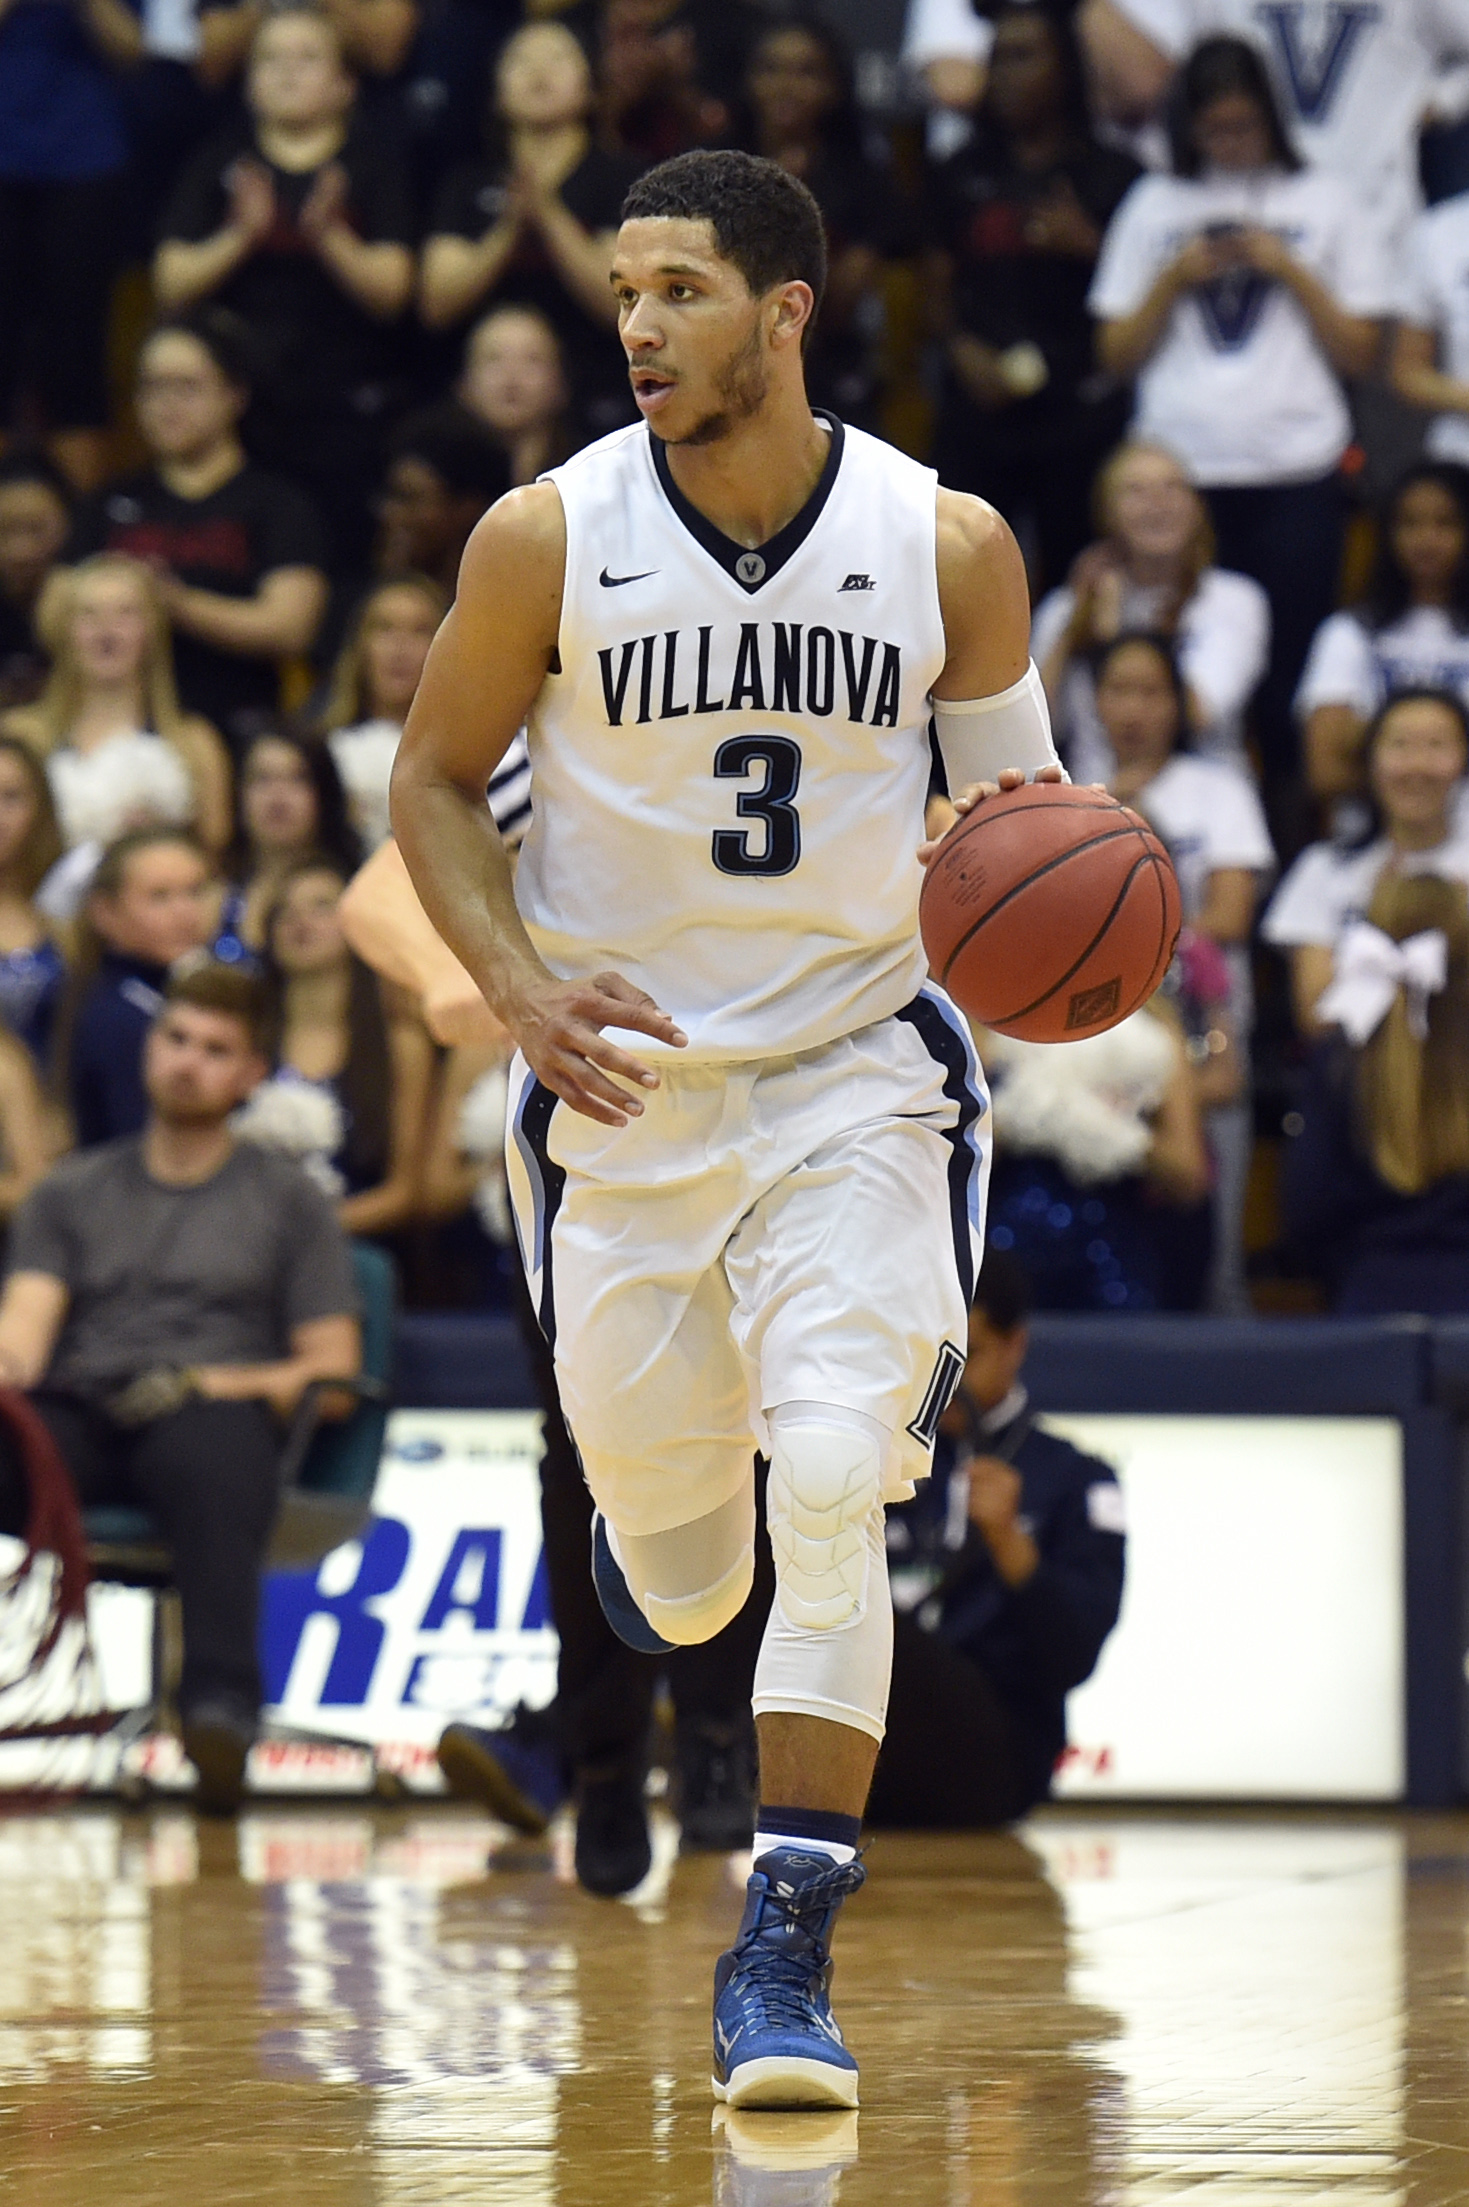 Hart has looked exceptional for Villanova so far this year.